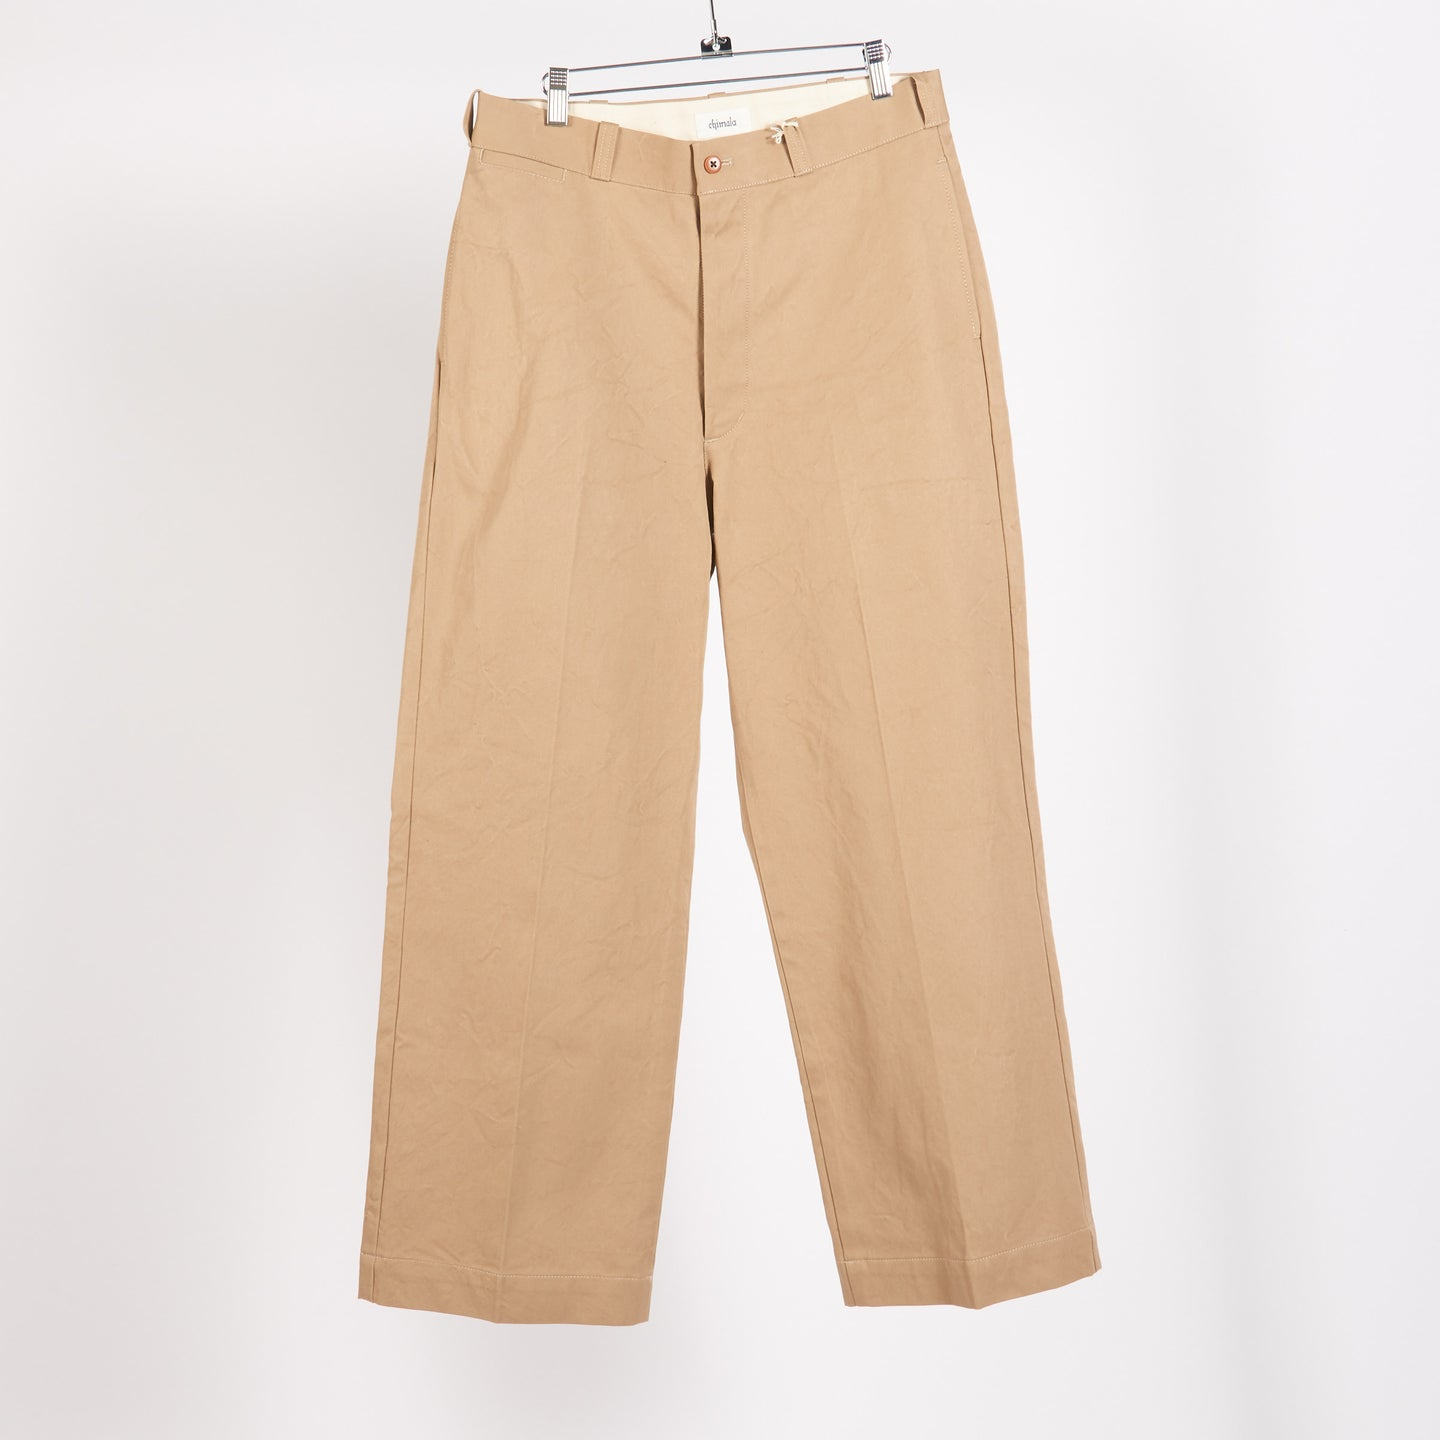 Beige Military Chino Trousers (Size 30)